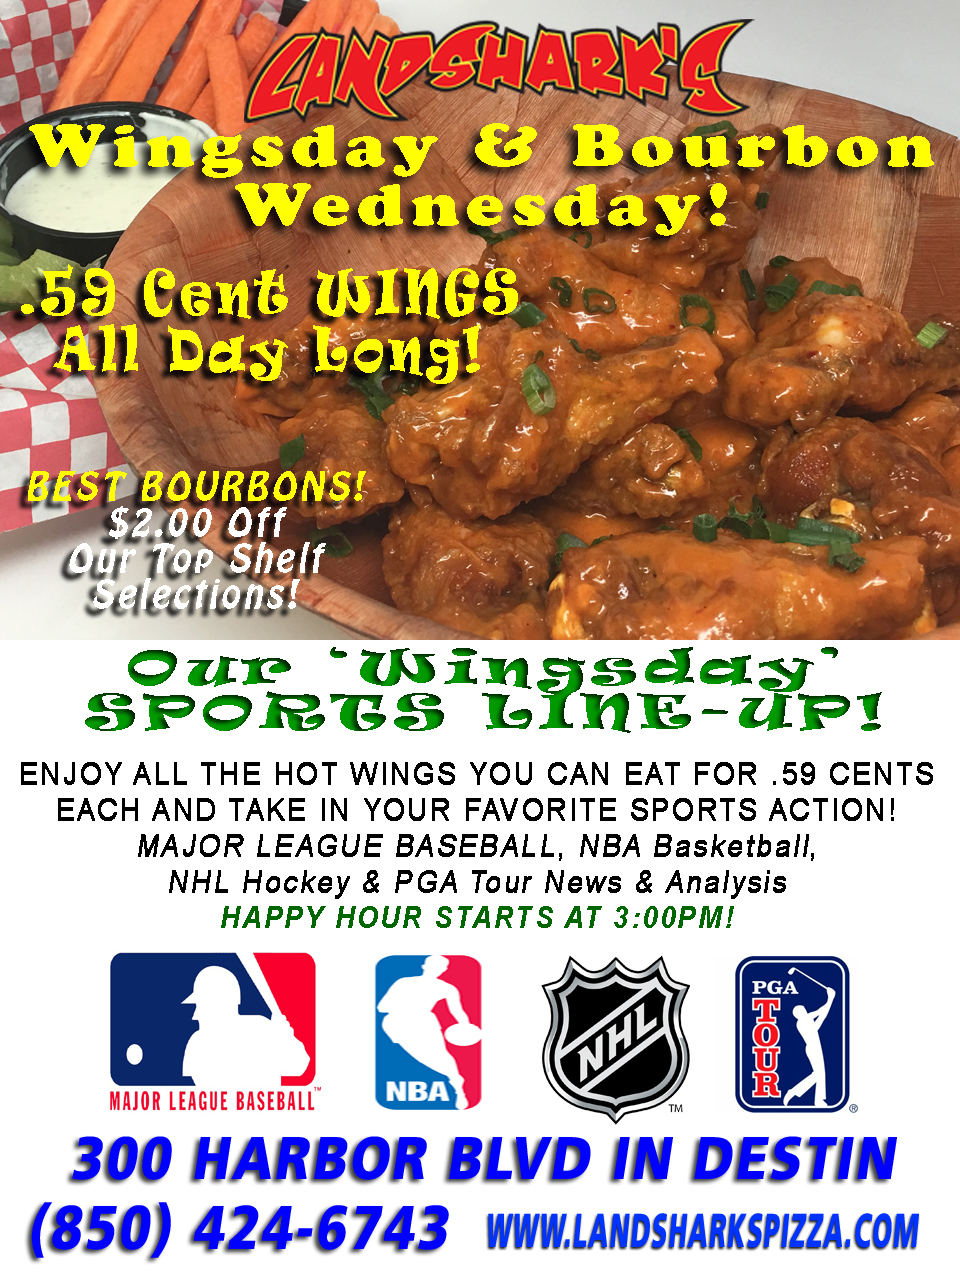 Best Buffalo Hot Wings in Destin FL Landsharks Wing Wednesday